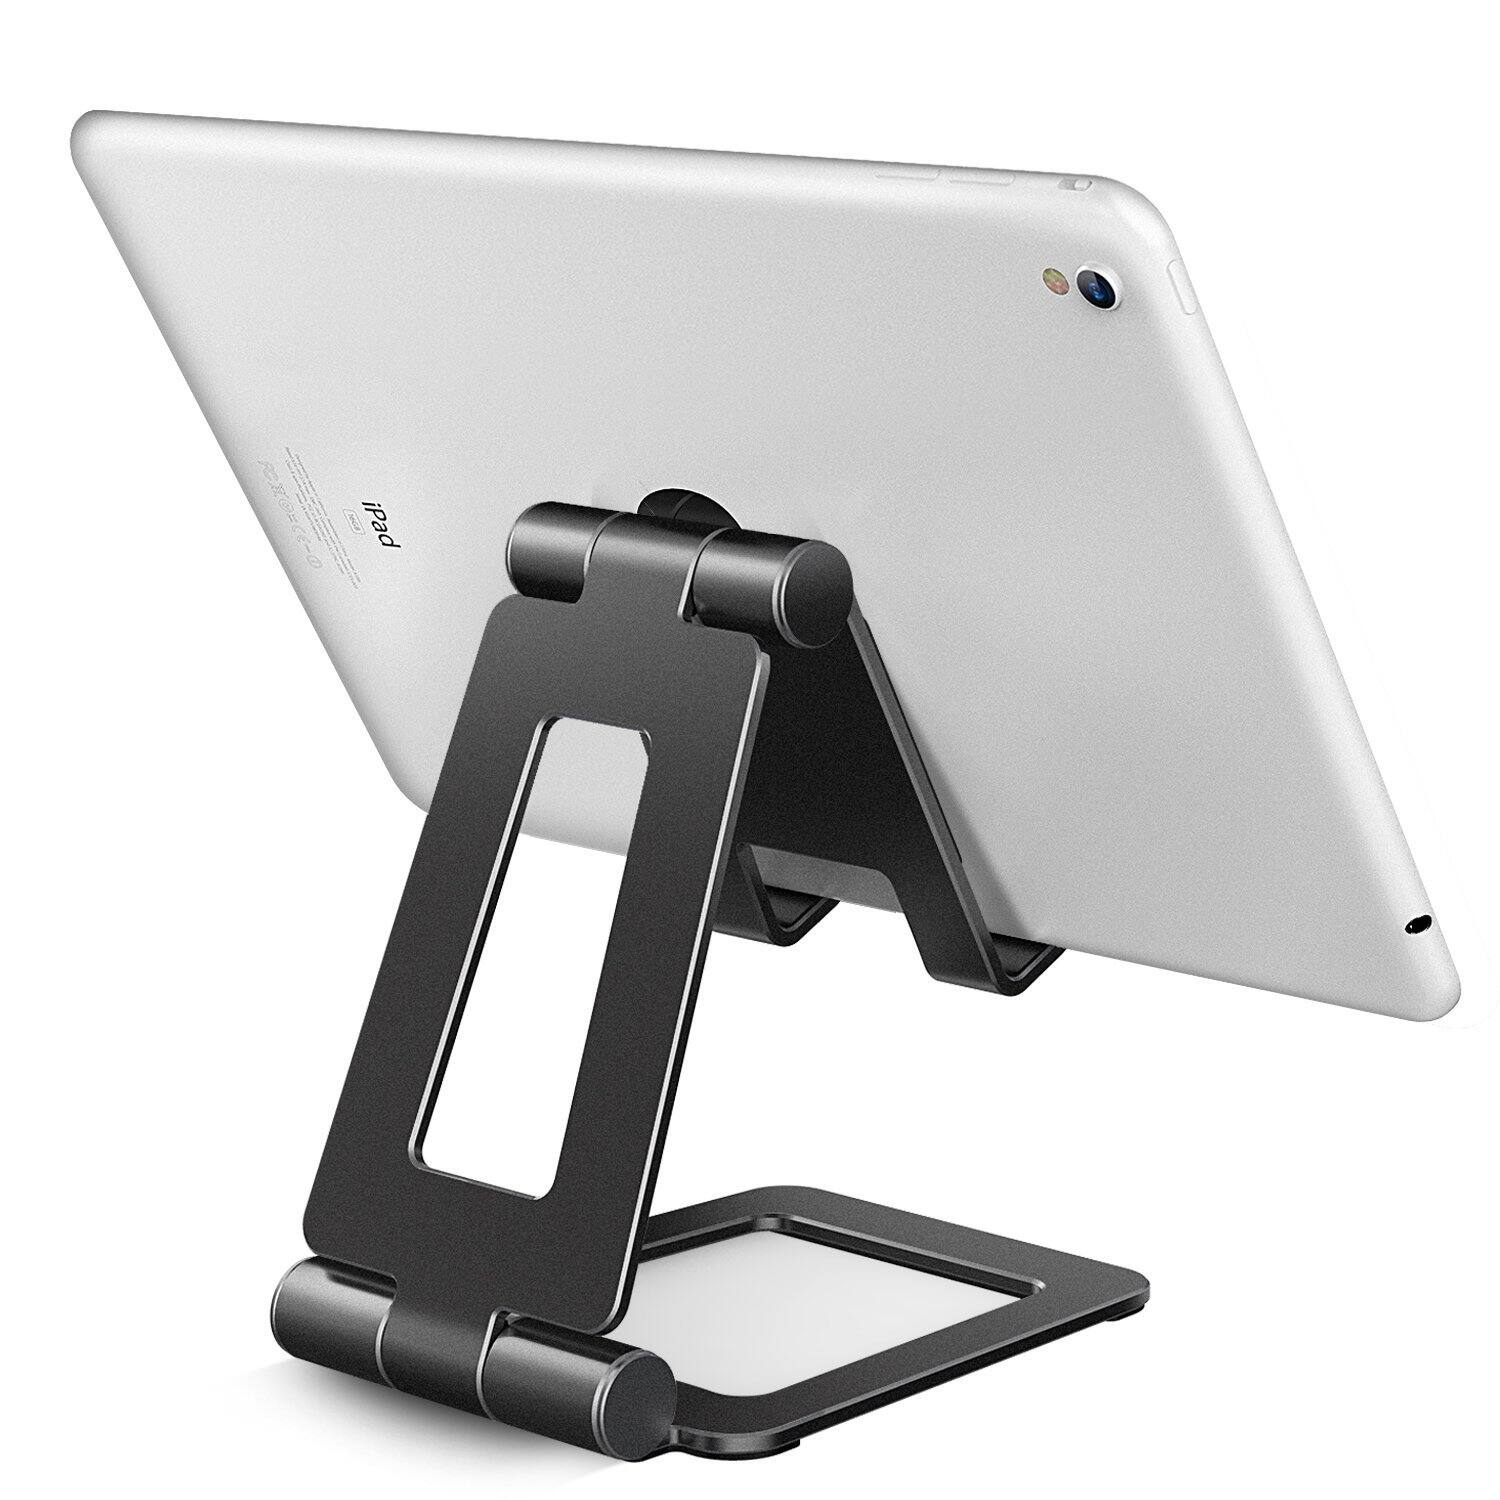 Adjustable & Dual Metal Fordable (270 degree) Stand / Holder for Tablet & Phone(4''-13'') various color from $7.99